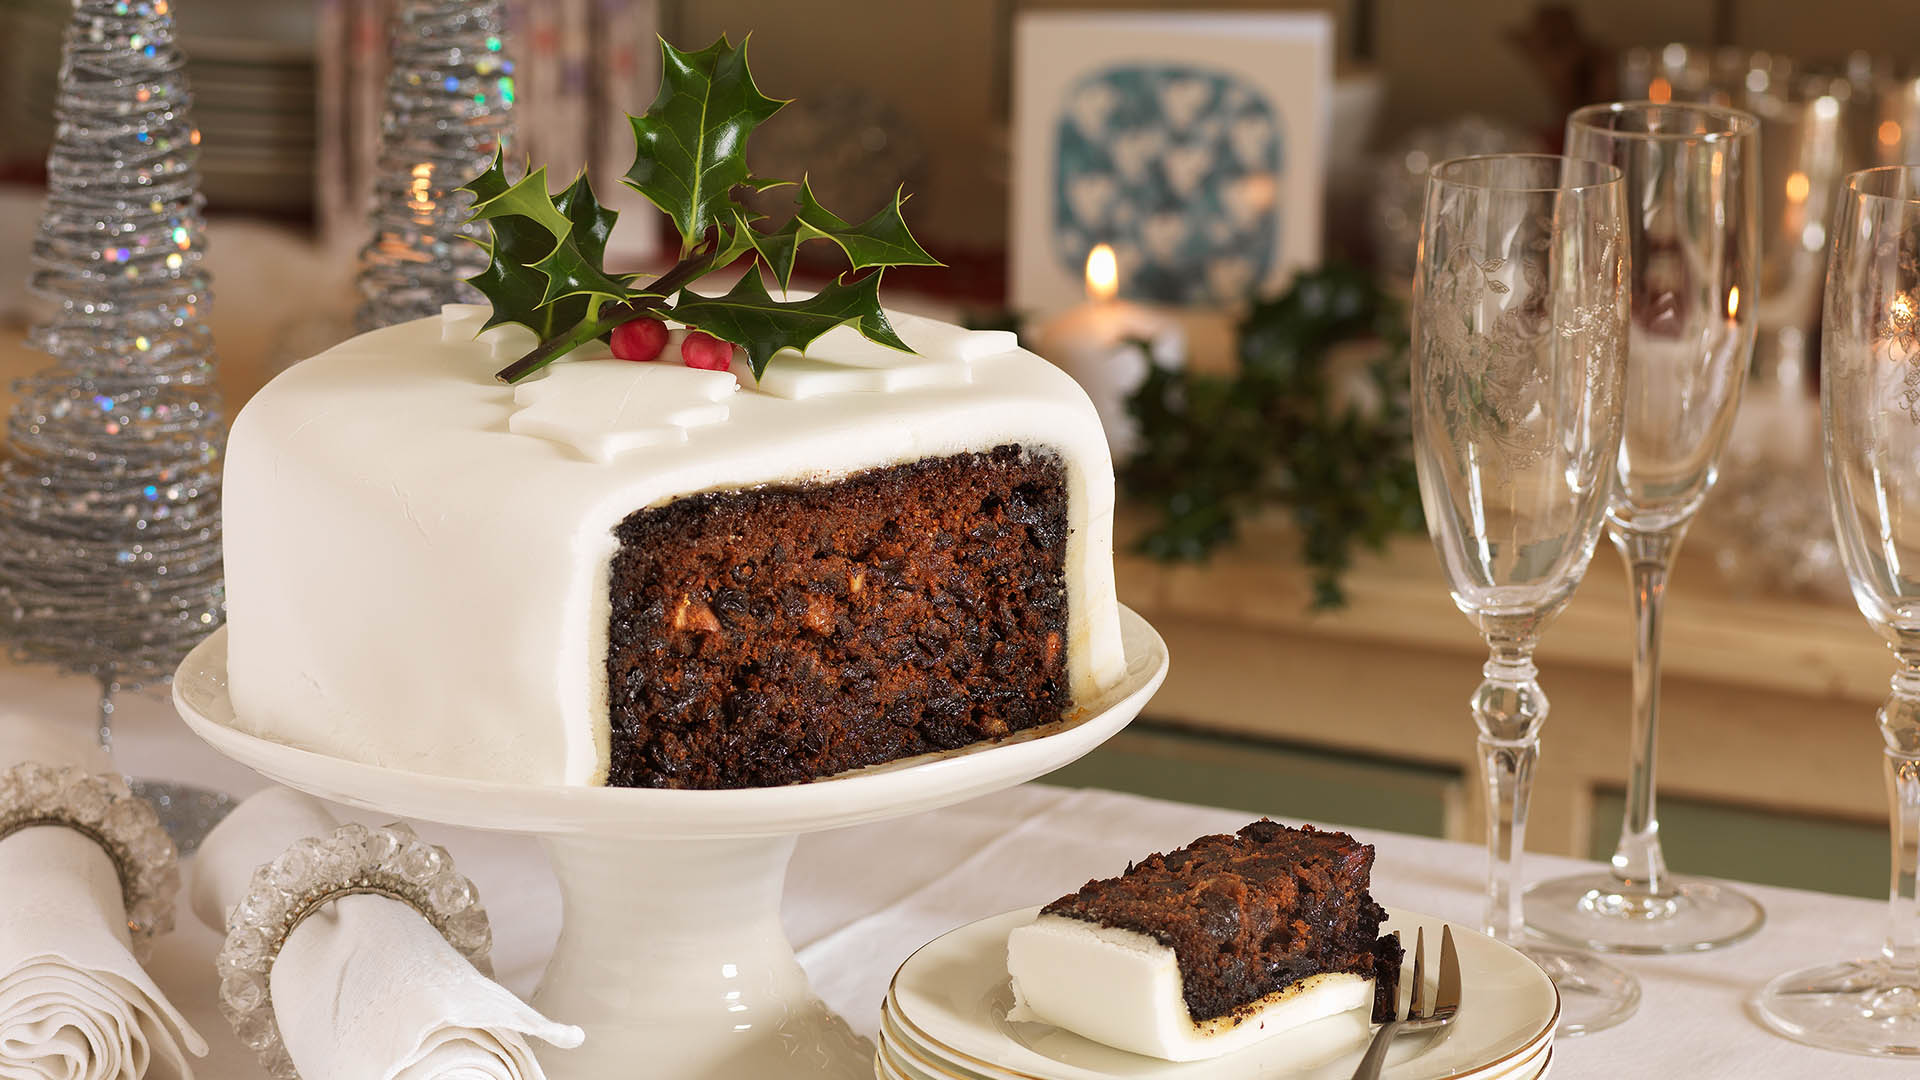 Best Brandy To Use For Christmas Cake